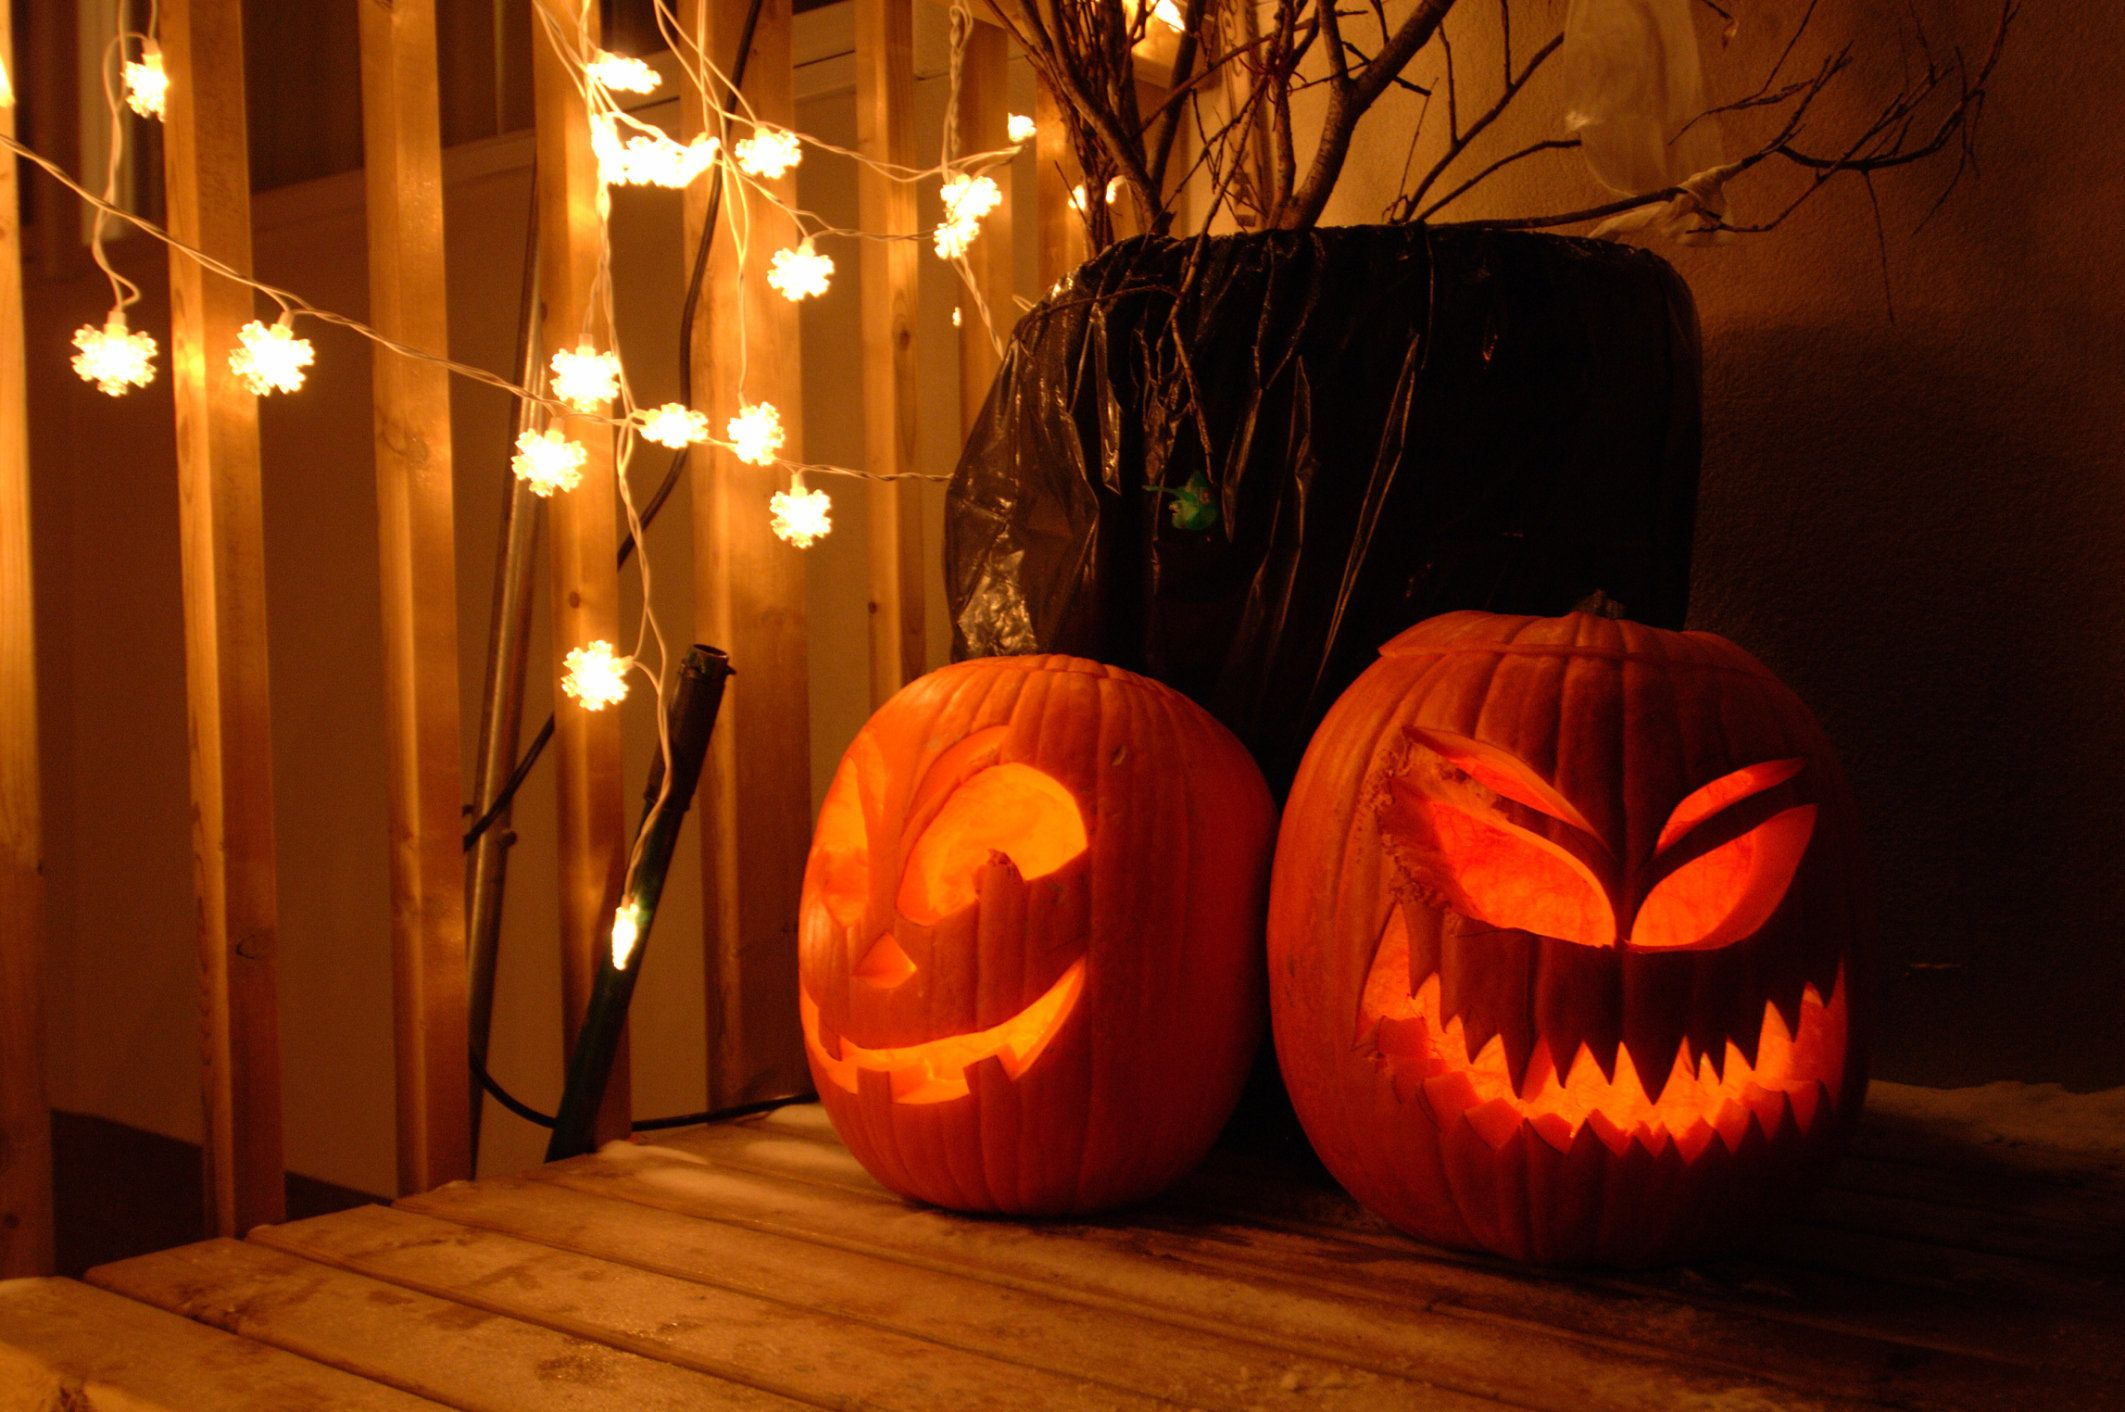 People believed carved pumpkins could ward off evil spirits.